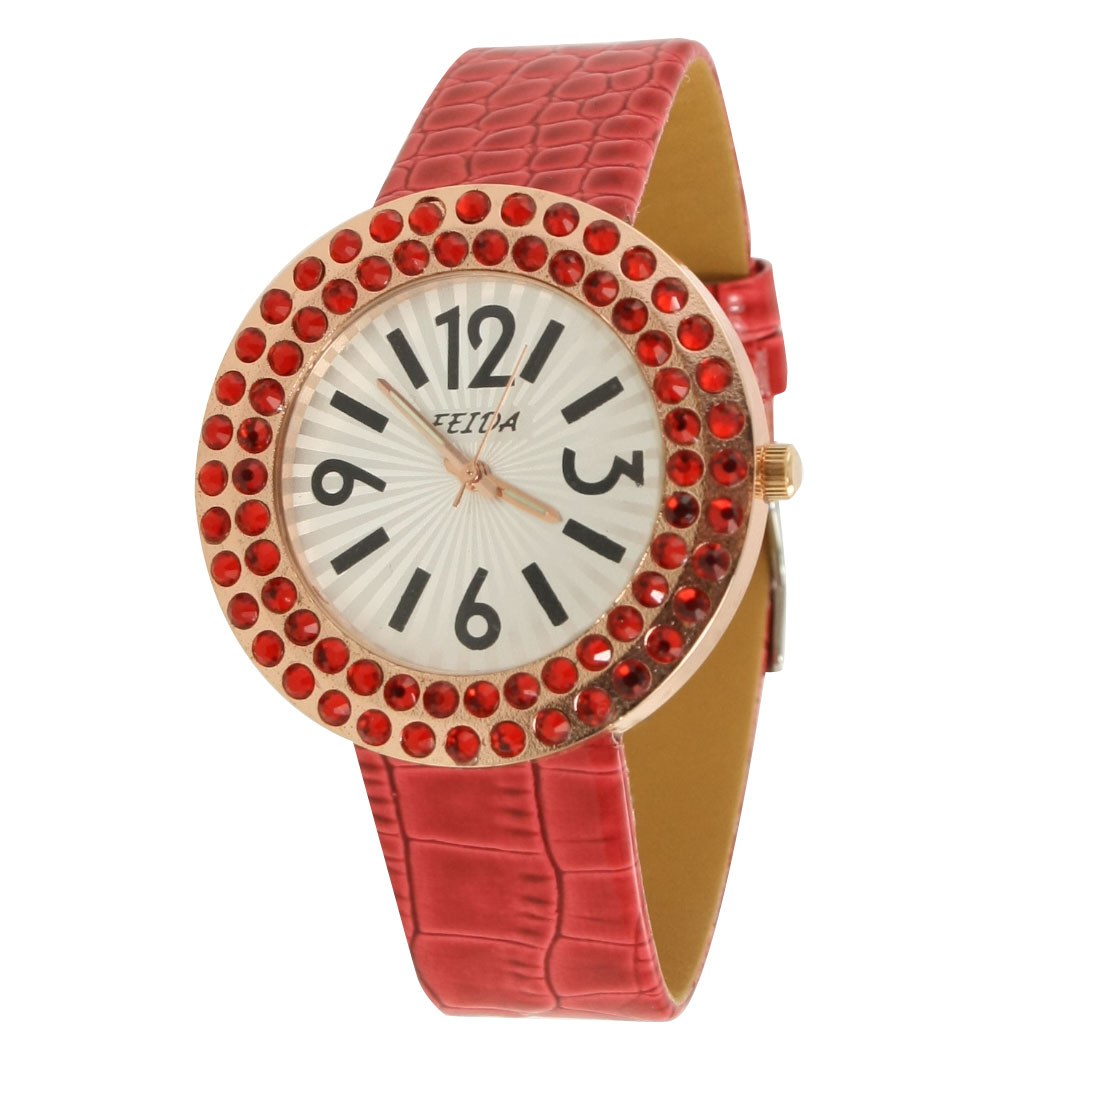 Woman Rhinestone Inlaid Case Red Crocodile Print Faux Leather Band Watch